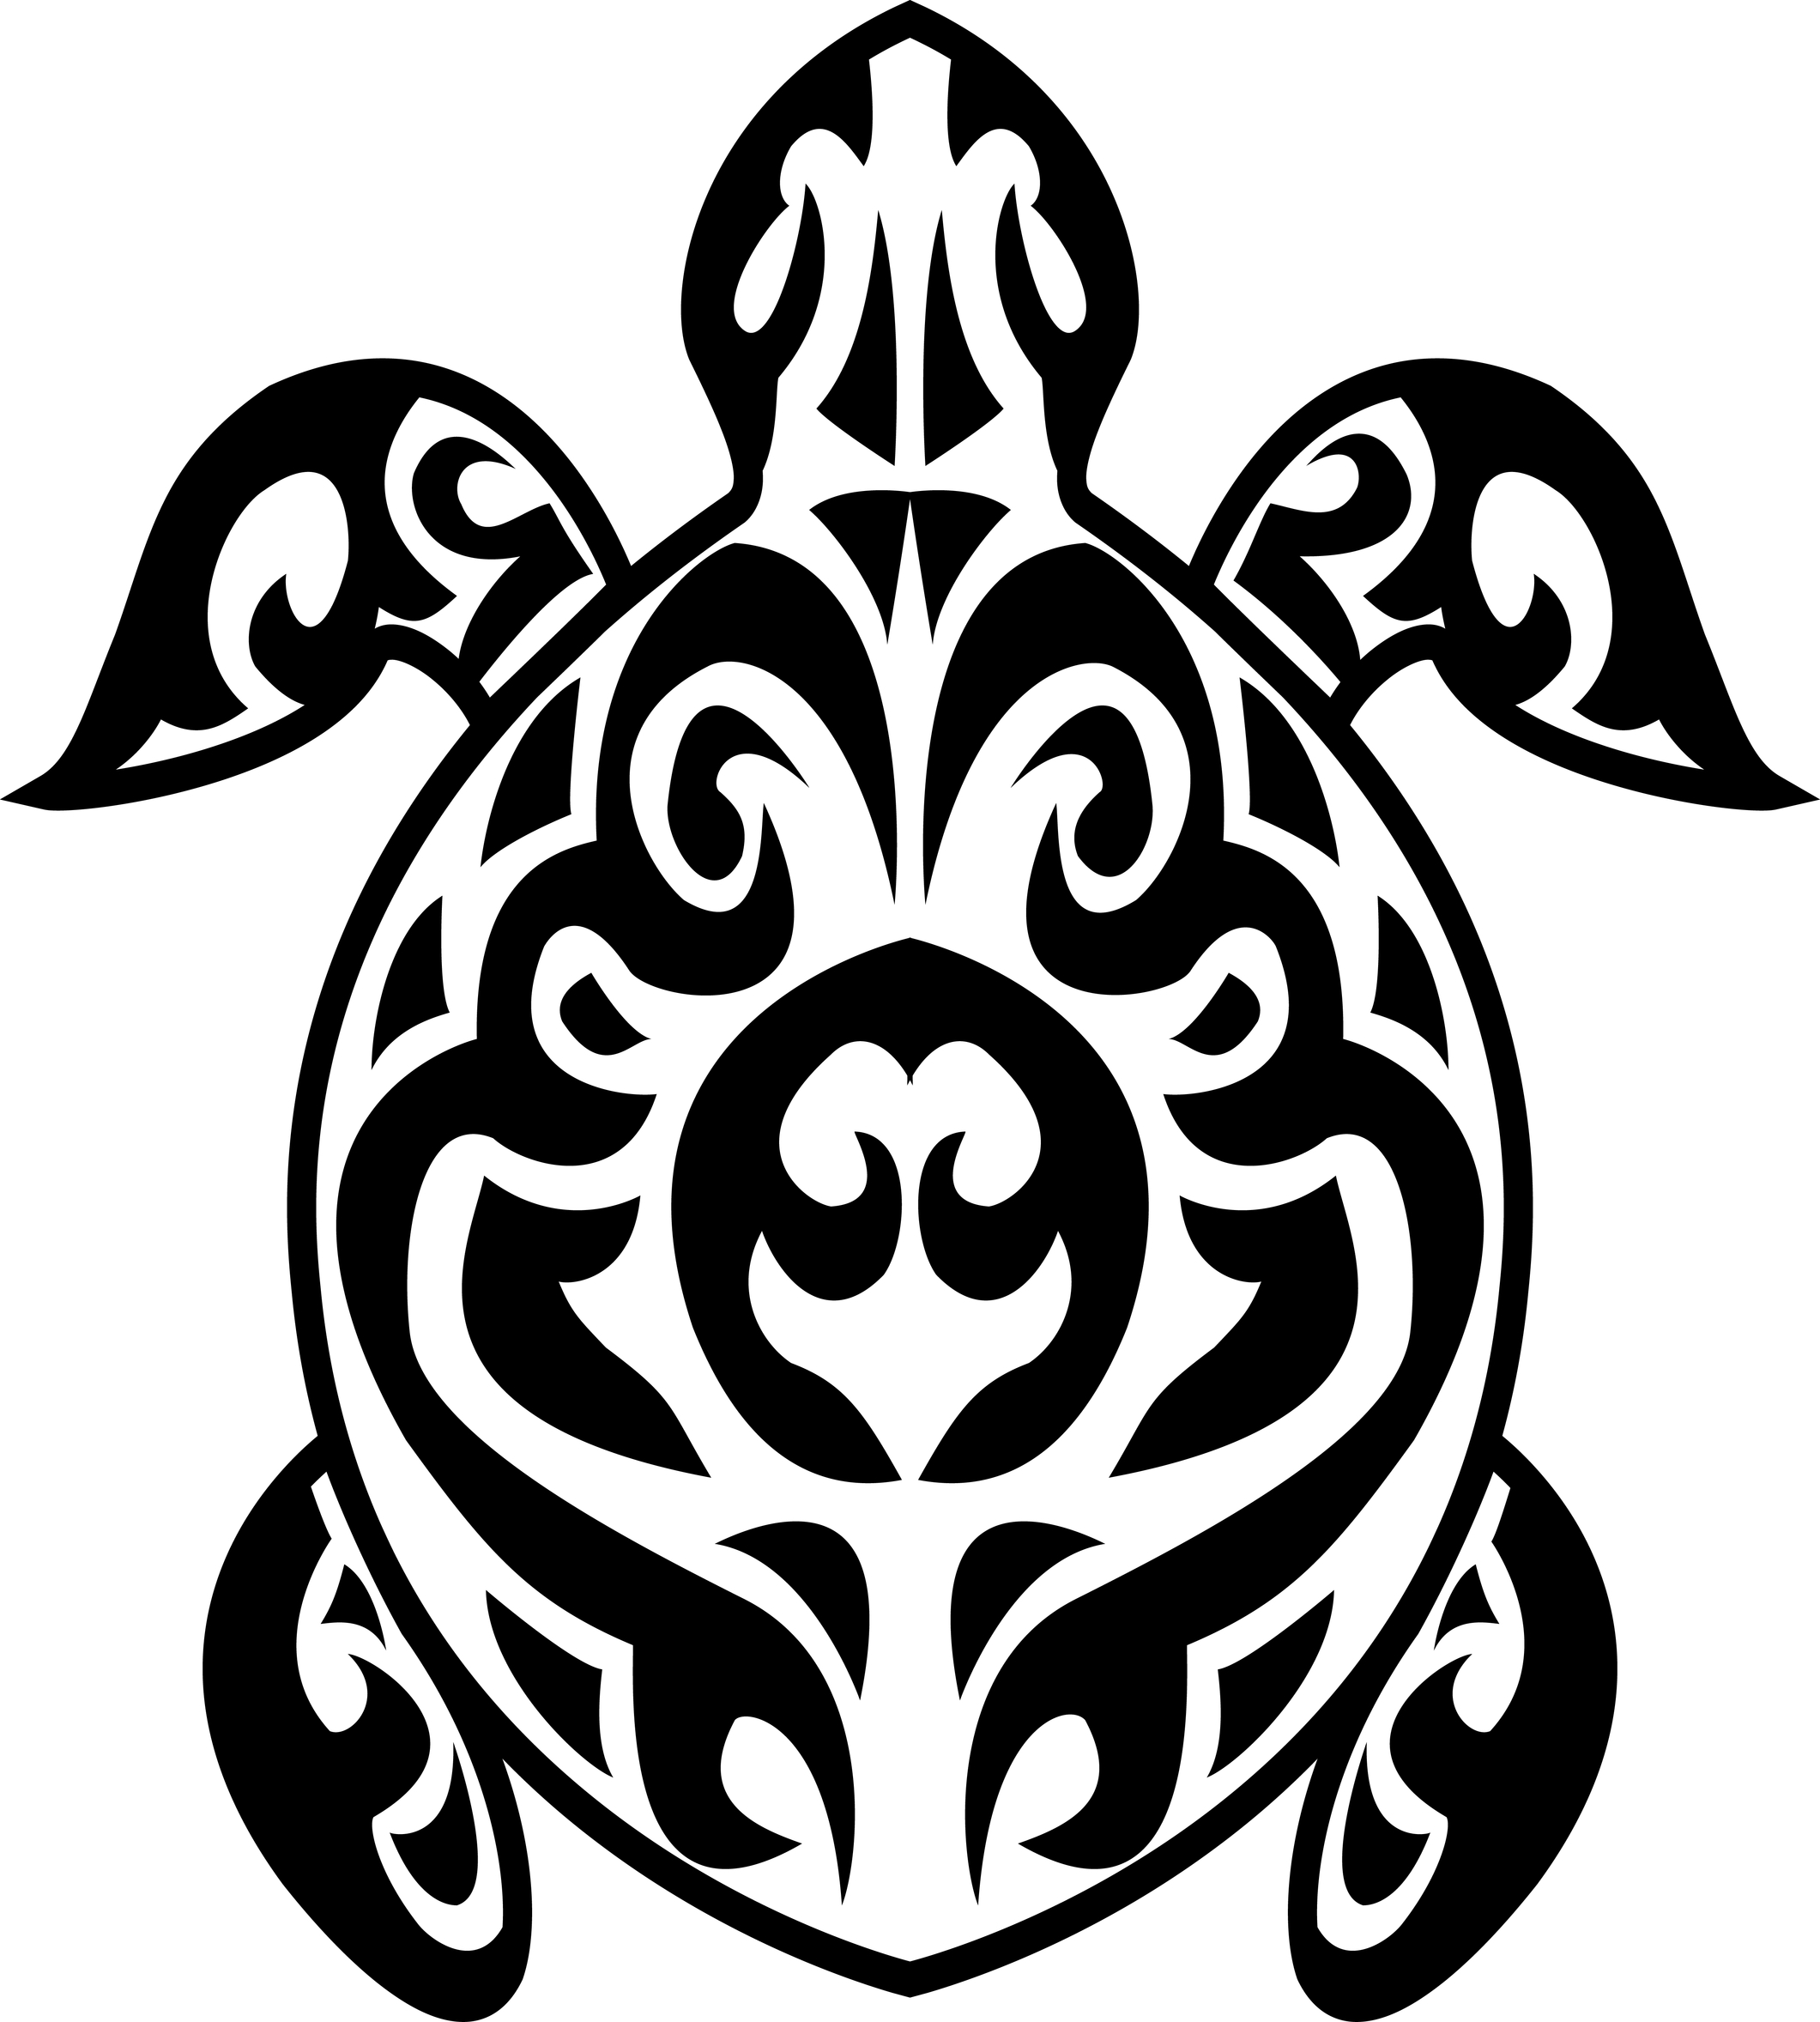 hawaiian turtle symbol clipart panda free clipart images. Black Bedroom Furniture Sets. Home Design Ideas